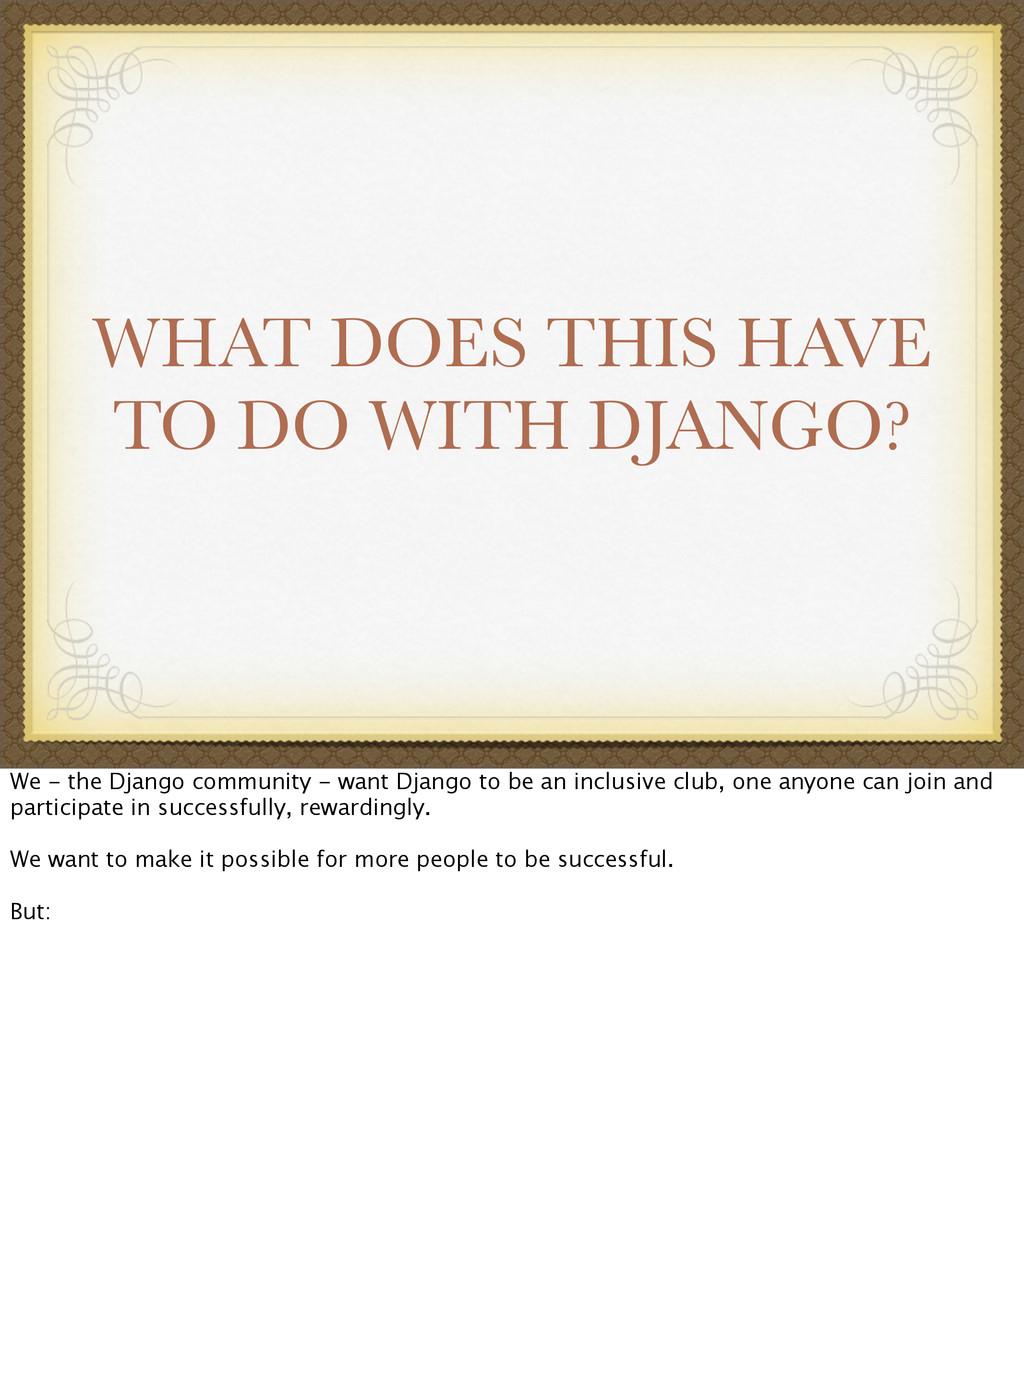 WHAT DOES THIS HAVE TO DO WITH DJANGO? We - the...